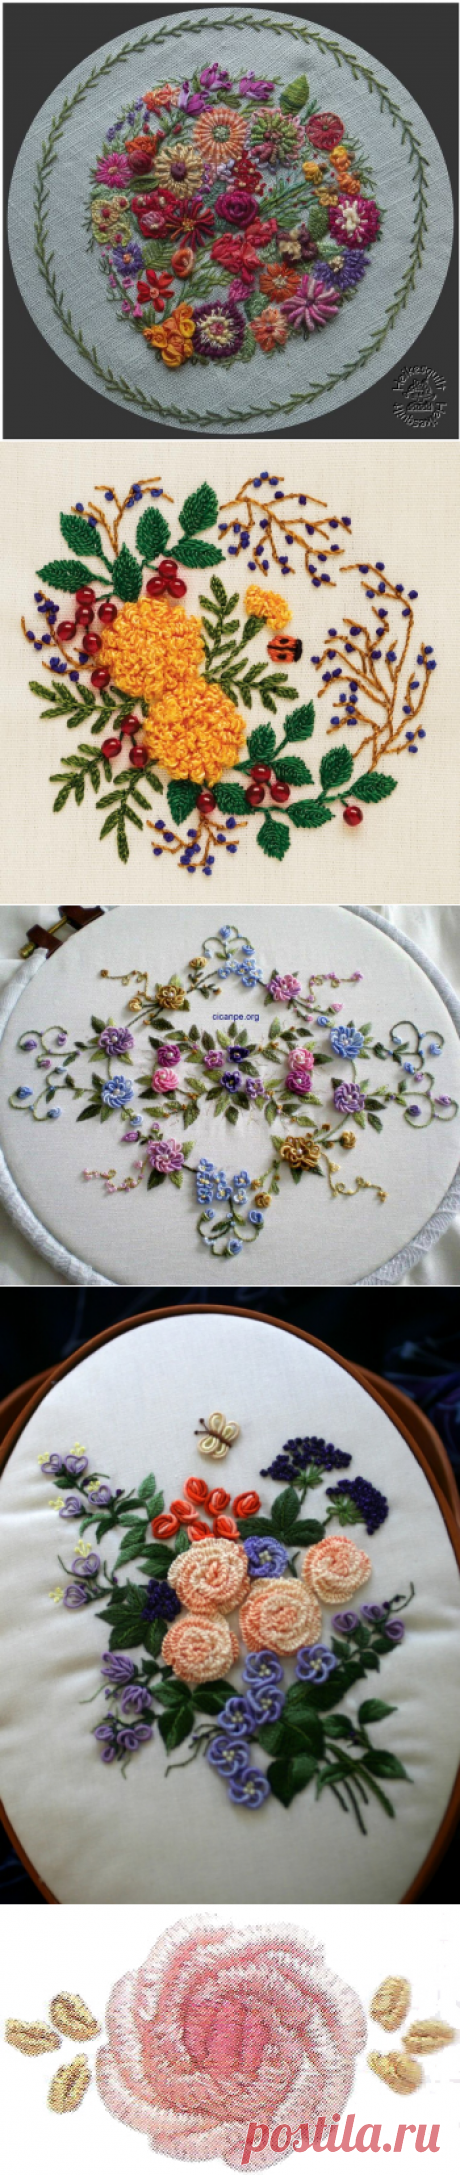 Rose embroidery in equipment of rococo